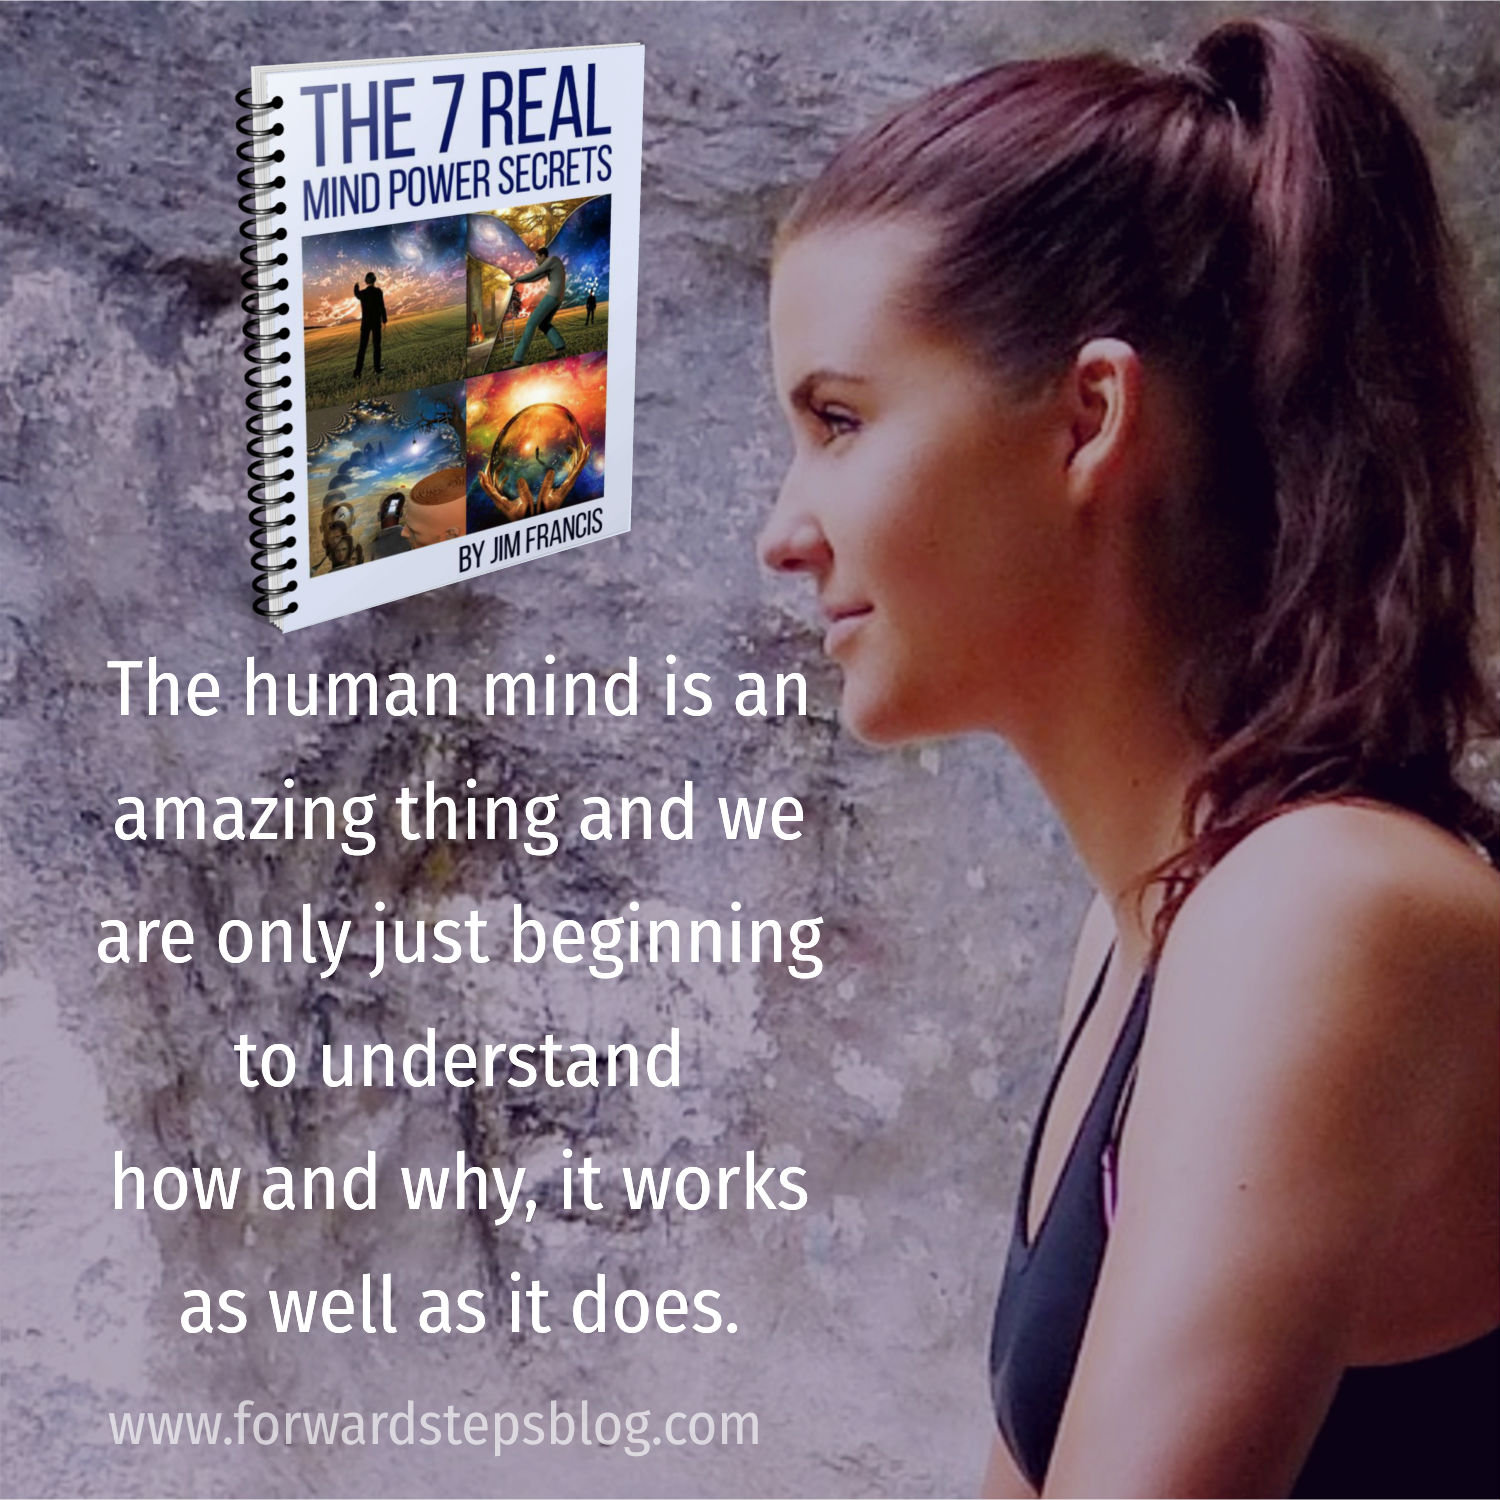 7 Real Mind Power Secrets Free eBook Download